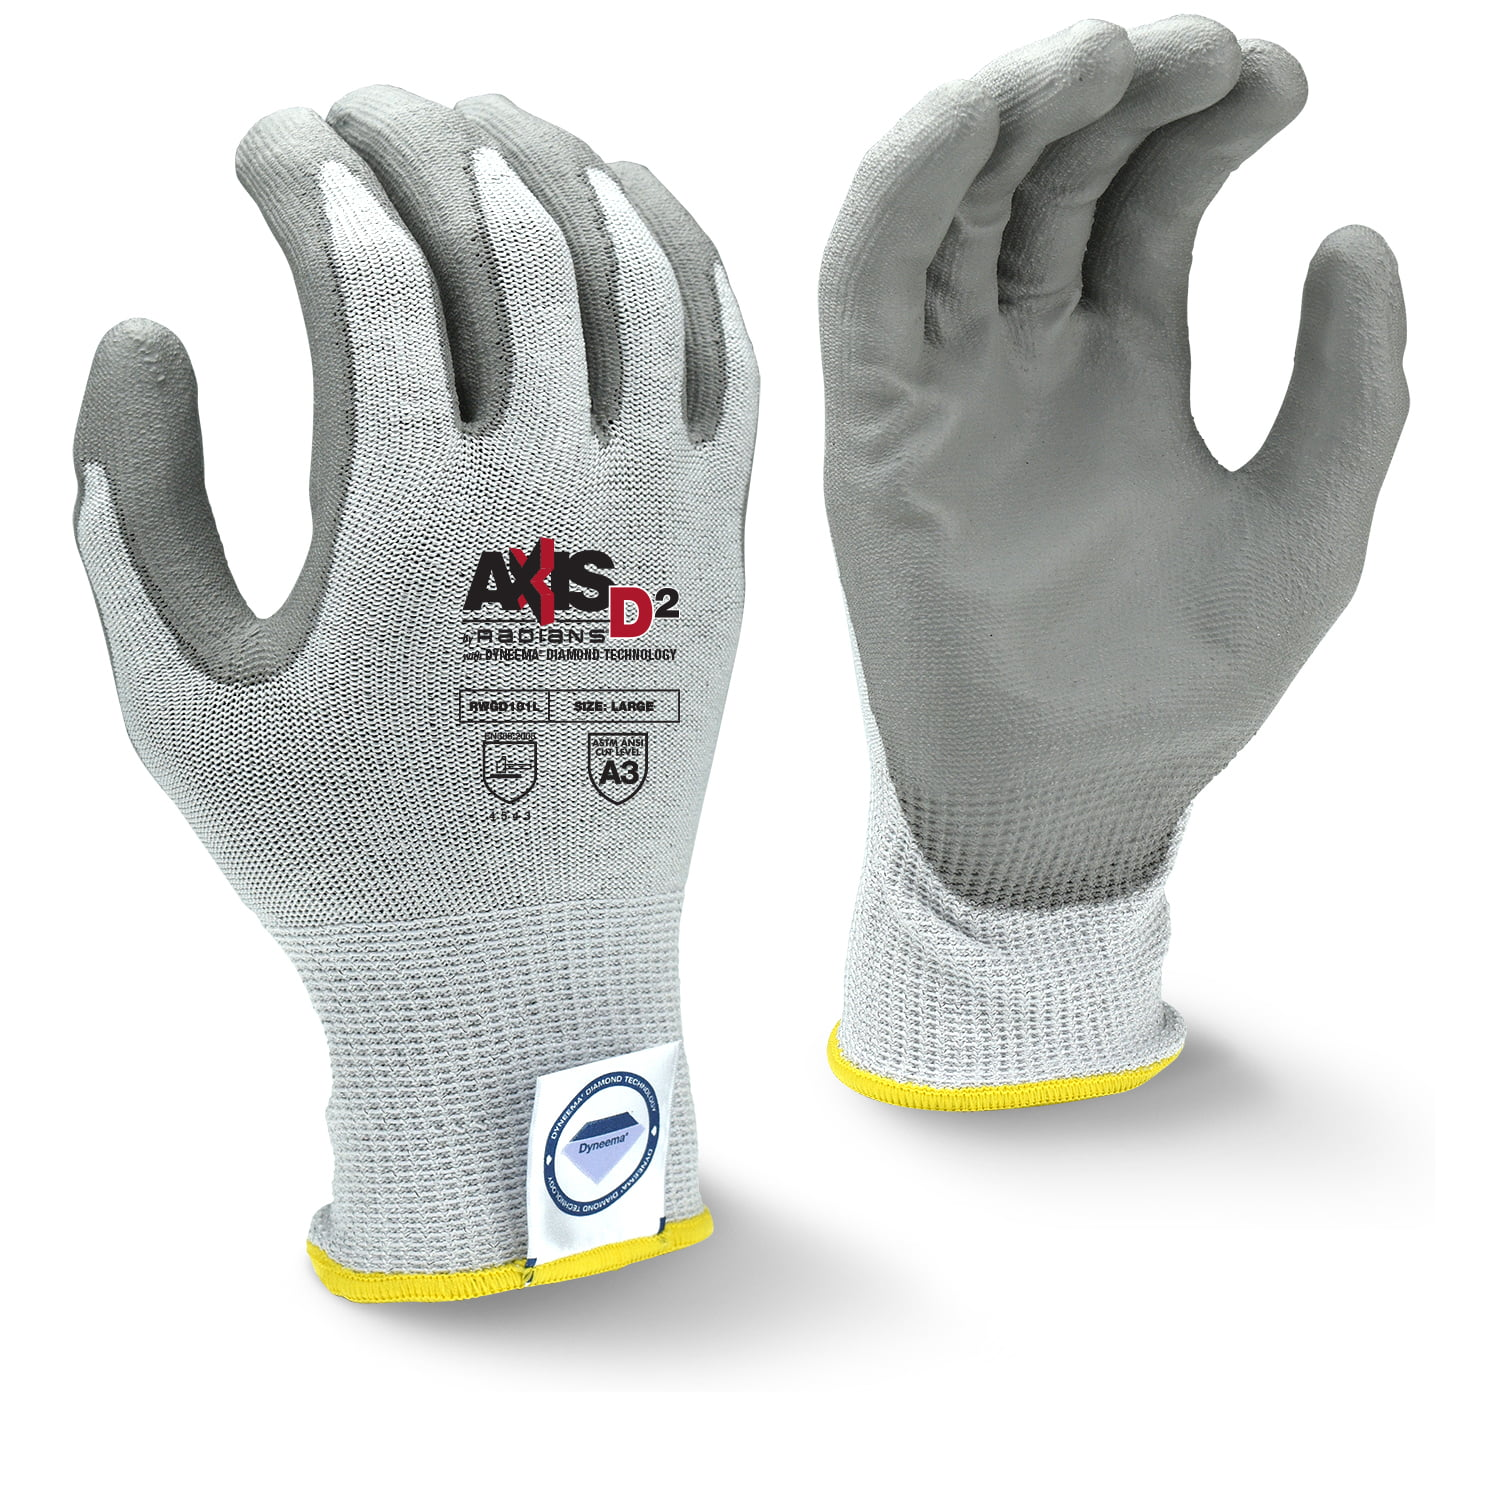 13 gauge Cut Resistant Gloves, Gray/White - Radians RWGD101 (Sold by the  pair)